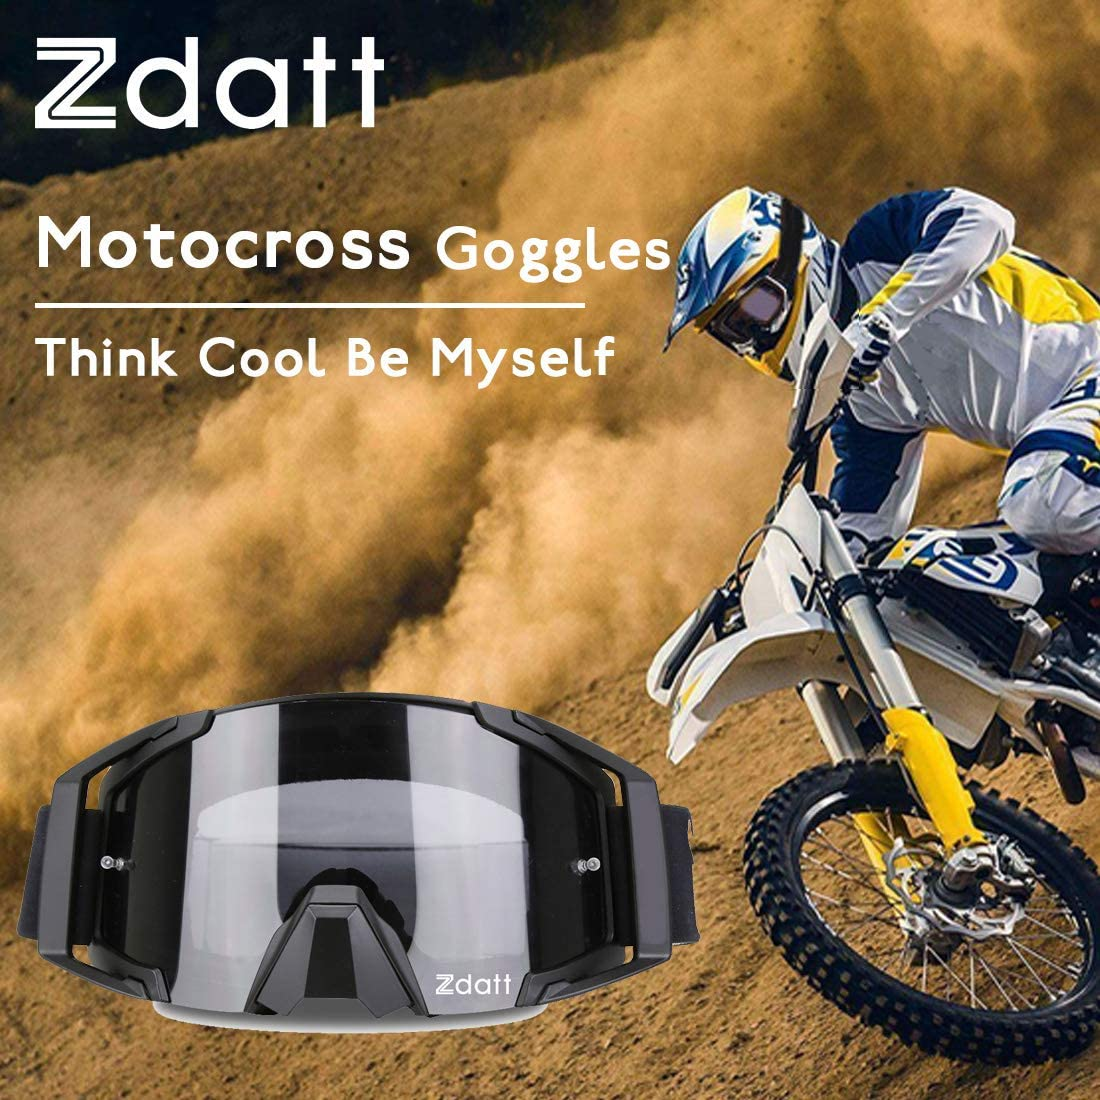 Motorcycle Goggles Dirt Bike Goggles Motocross Goggles ATV Goggles Dustproof Racing Goggles Scratch Resistant Ski Goggles Protective Safety Glasses